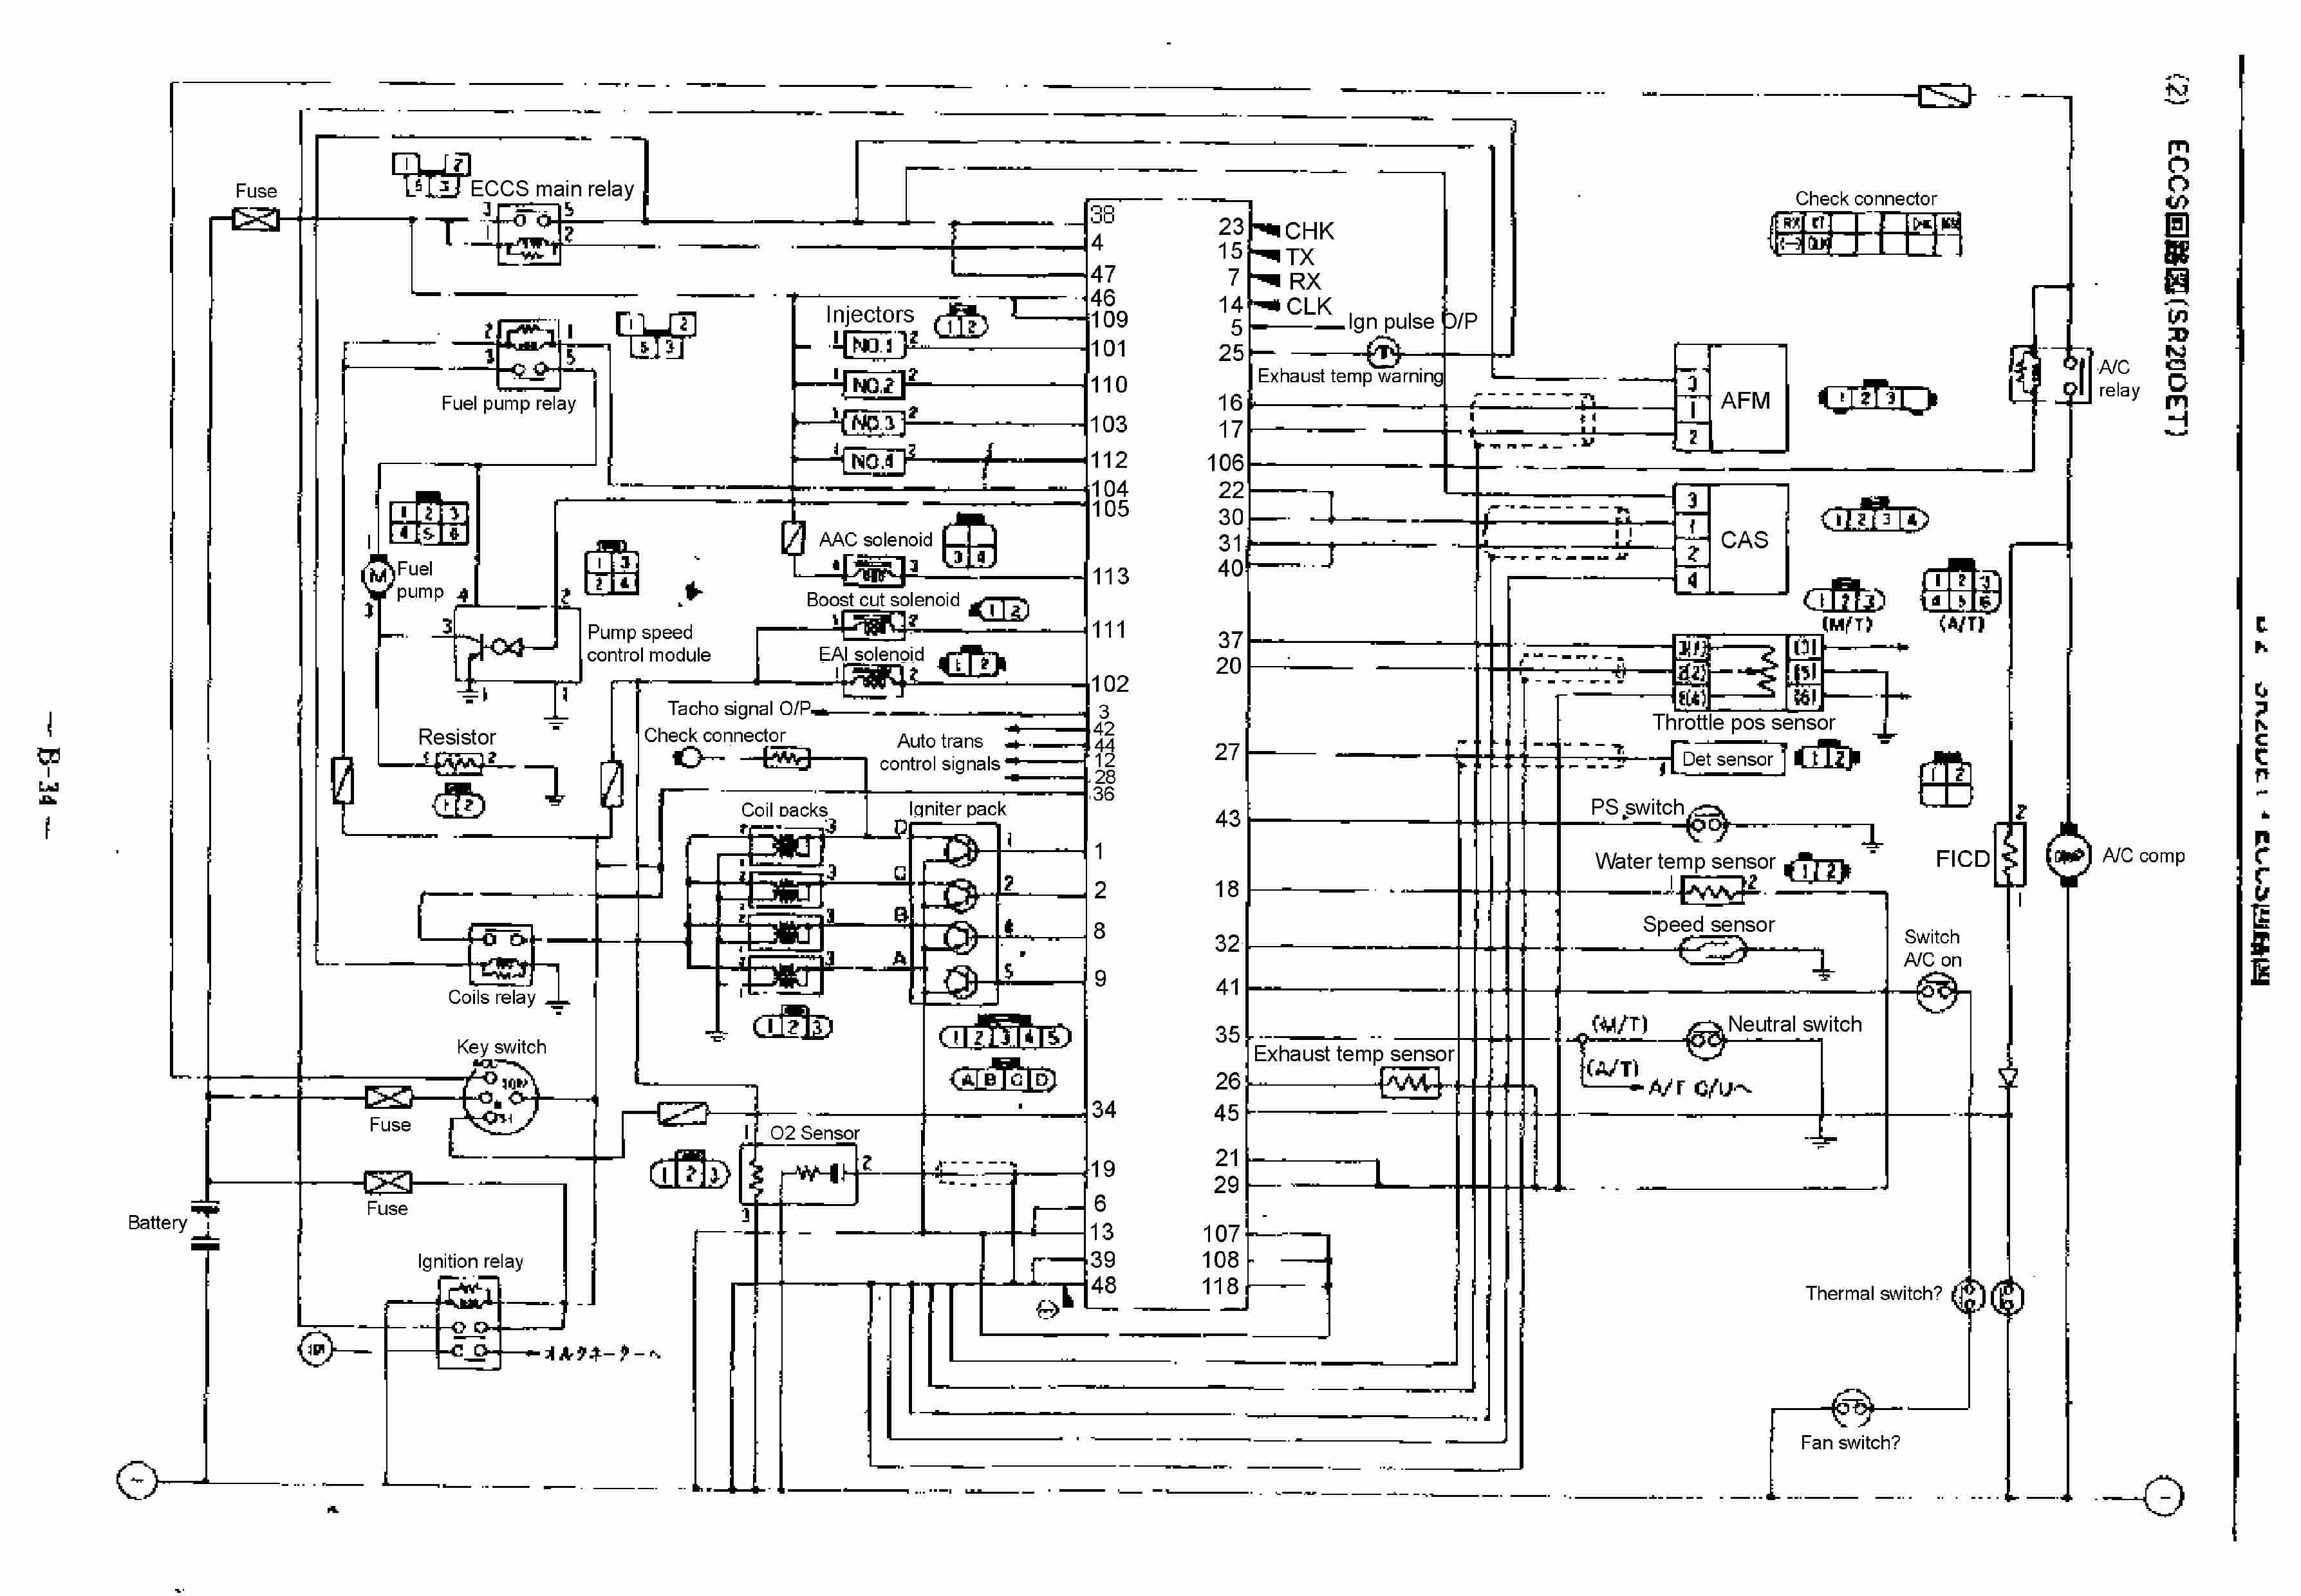 bluebird bus wiring diagram 1994 completed wiring diagrams u2022 rh vojvodinaslovakart com School Bus Schematic Mobile Home Electrical Wiring Diagram